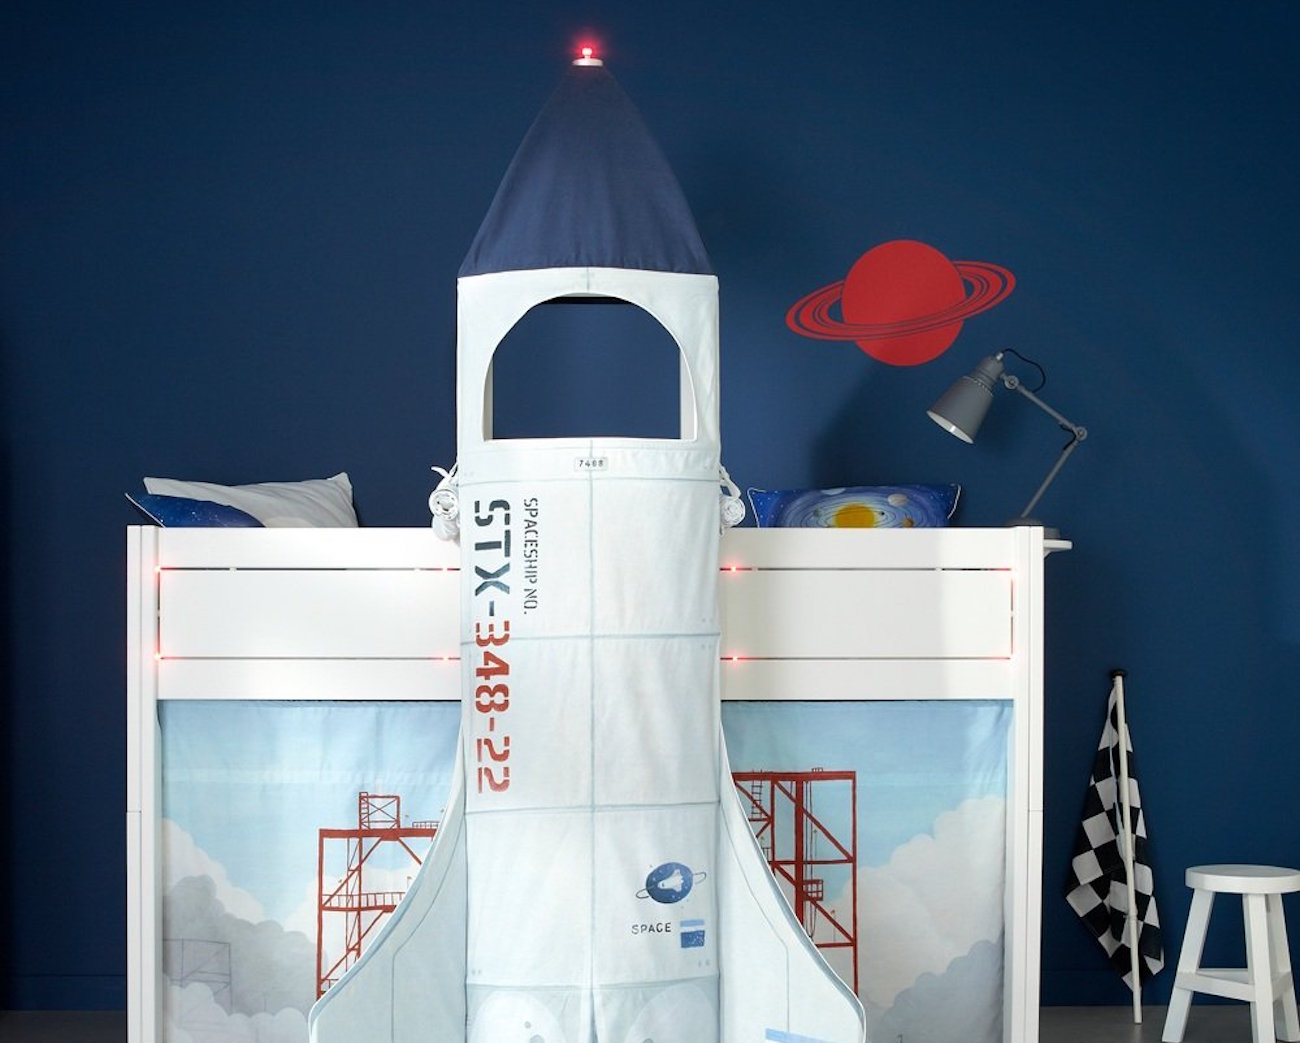 discovery-space-rocket-bed-by-lifetime-new-3